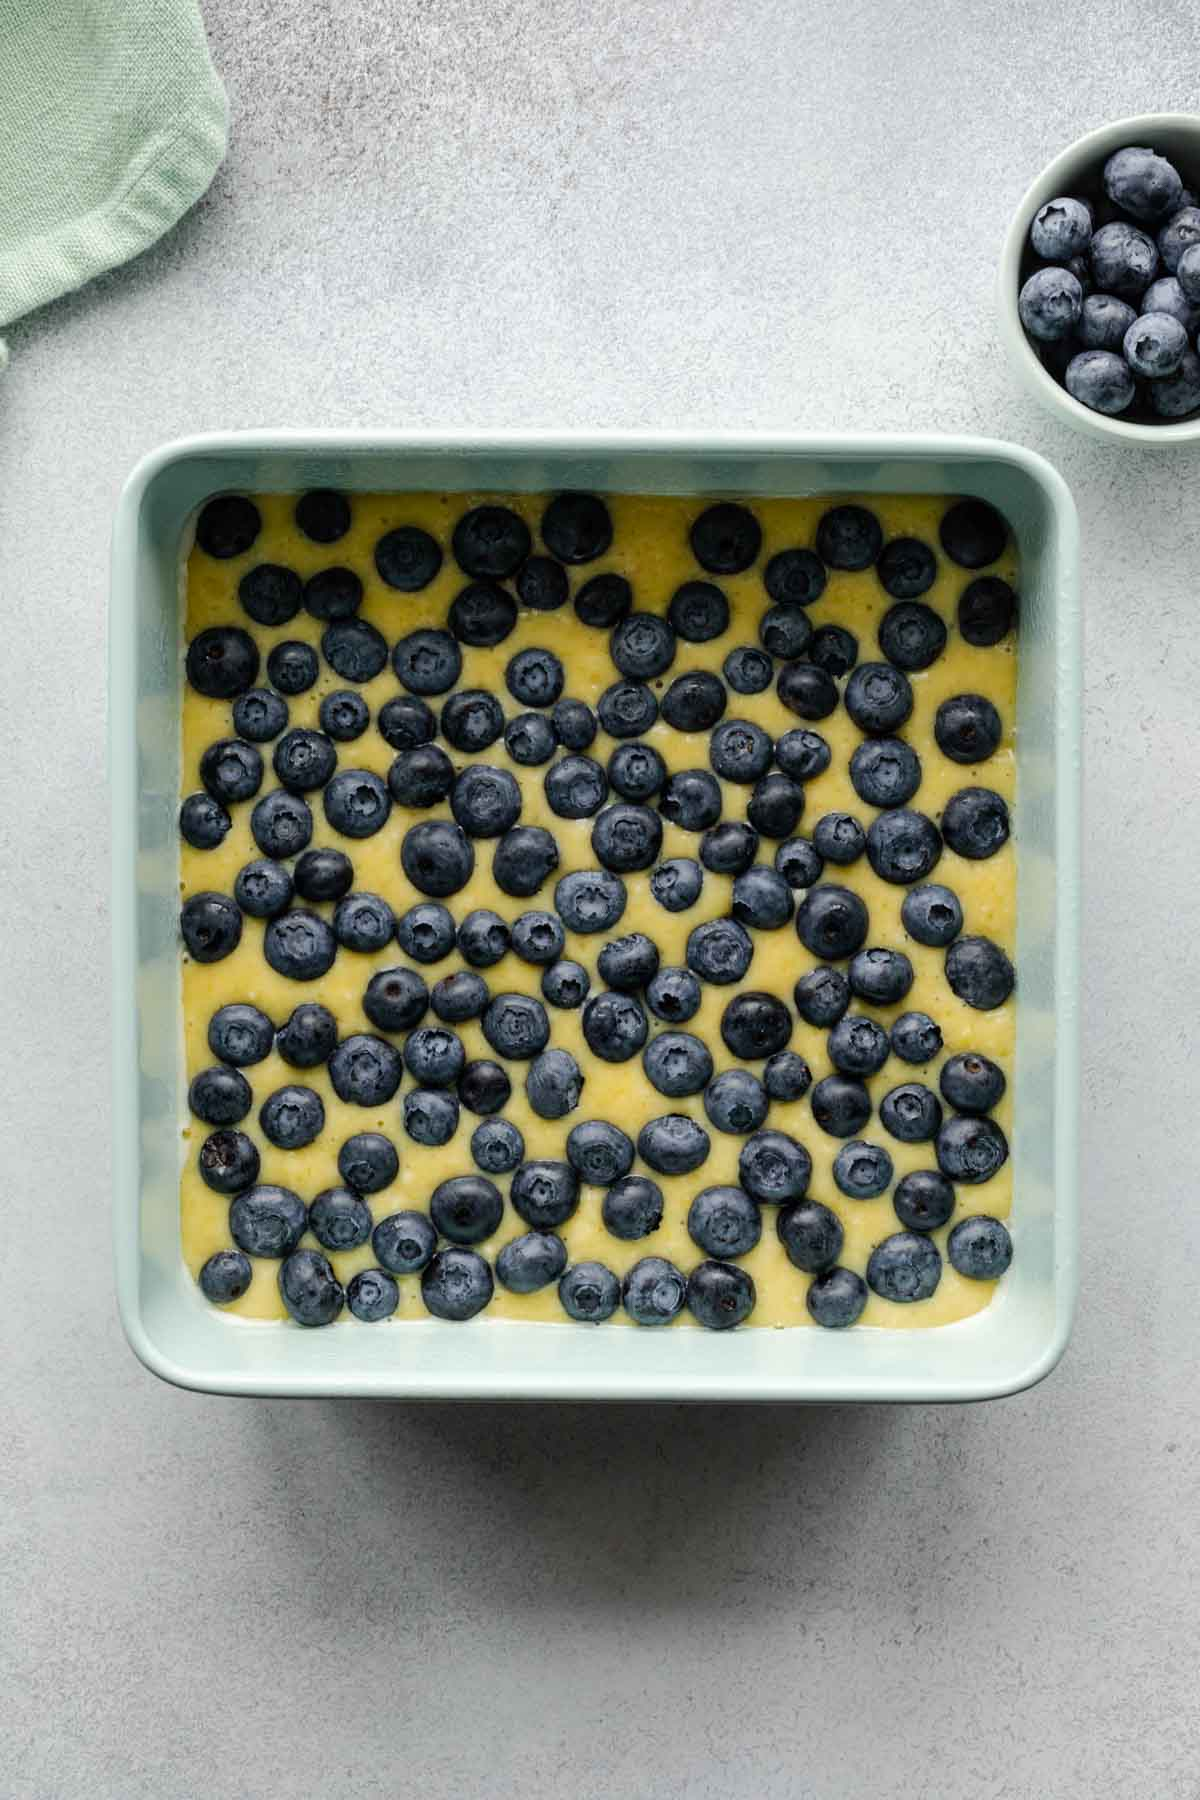 Cake batter in a square pan with blueberries arranged on top.